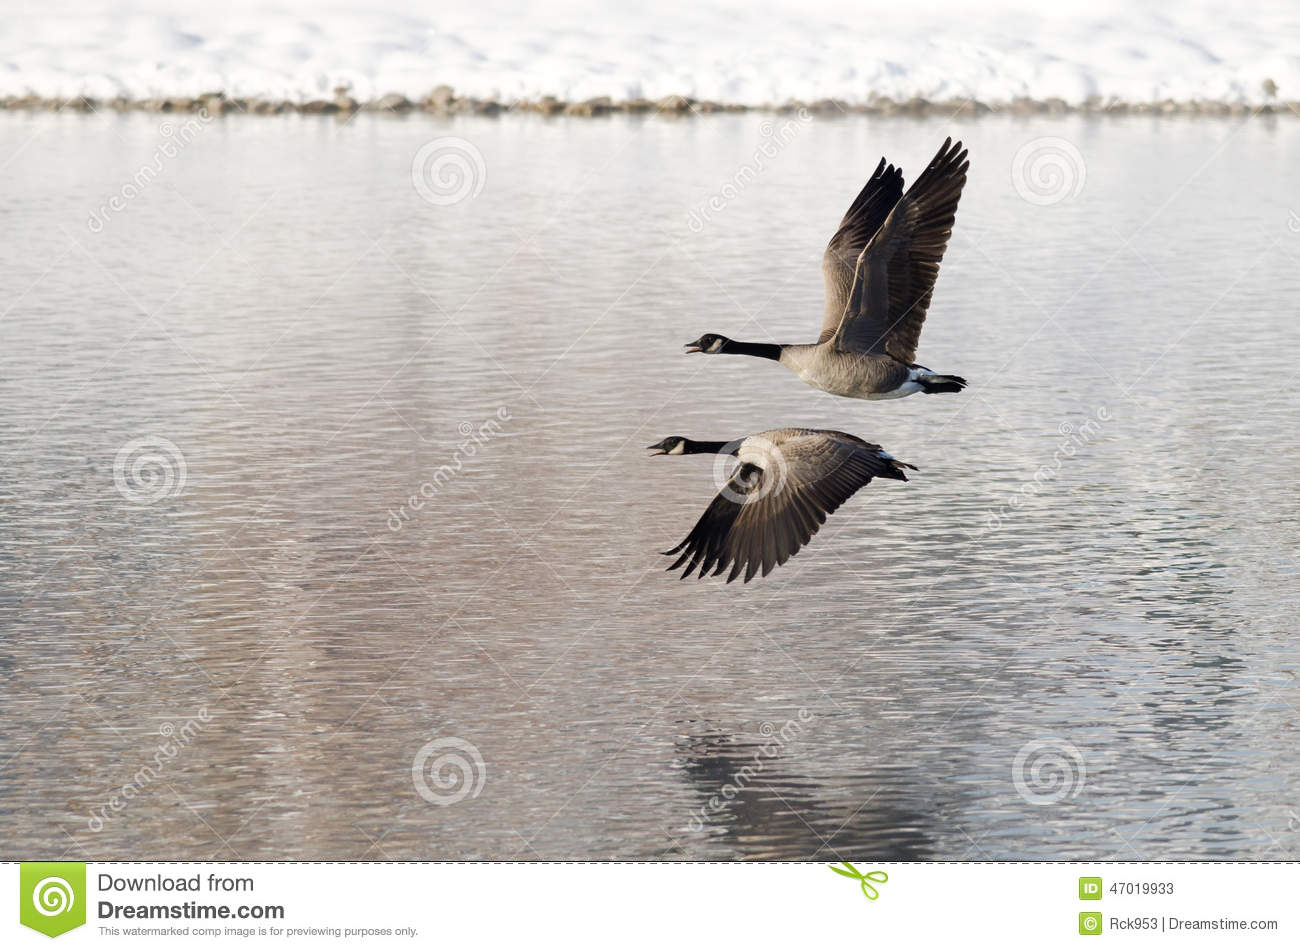 Two Canada Geese Taking to Flight from a Winter Lake